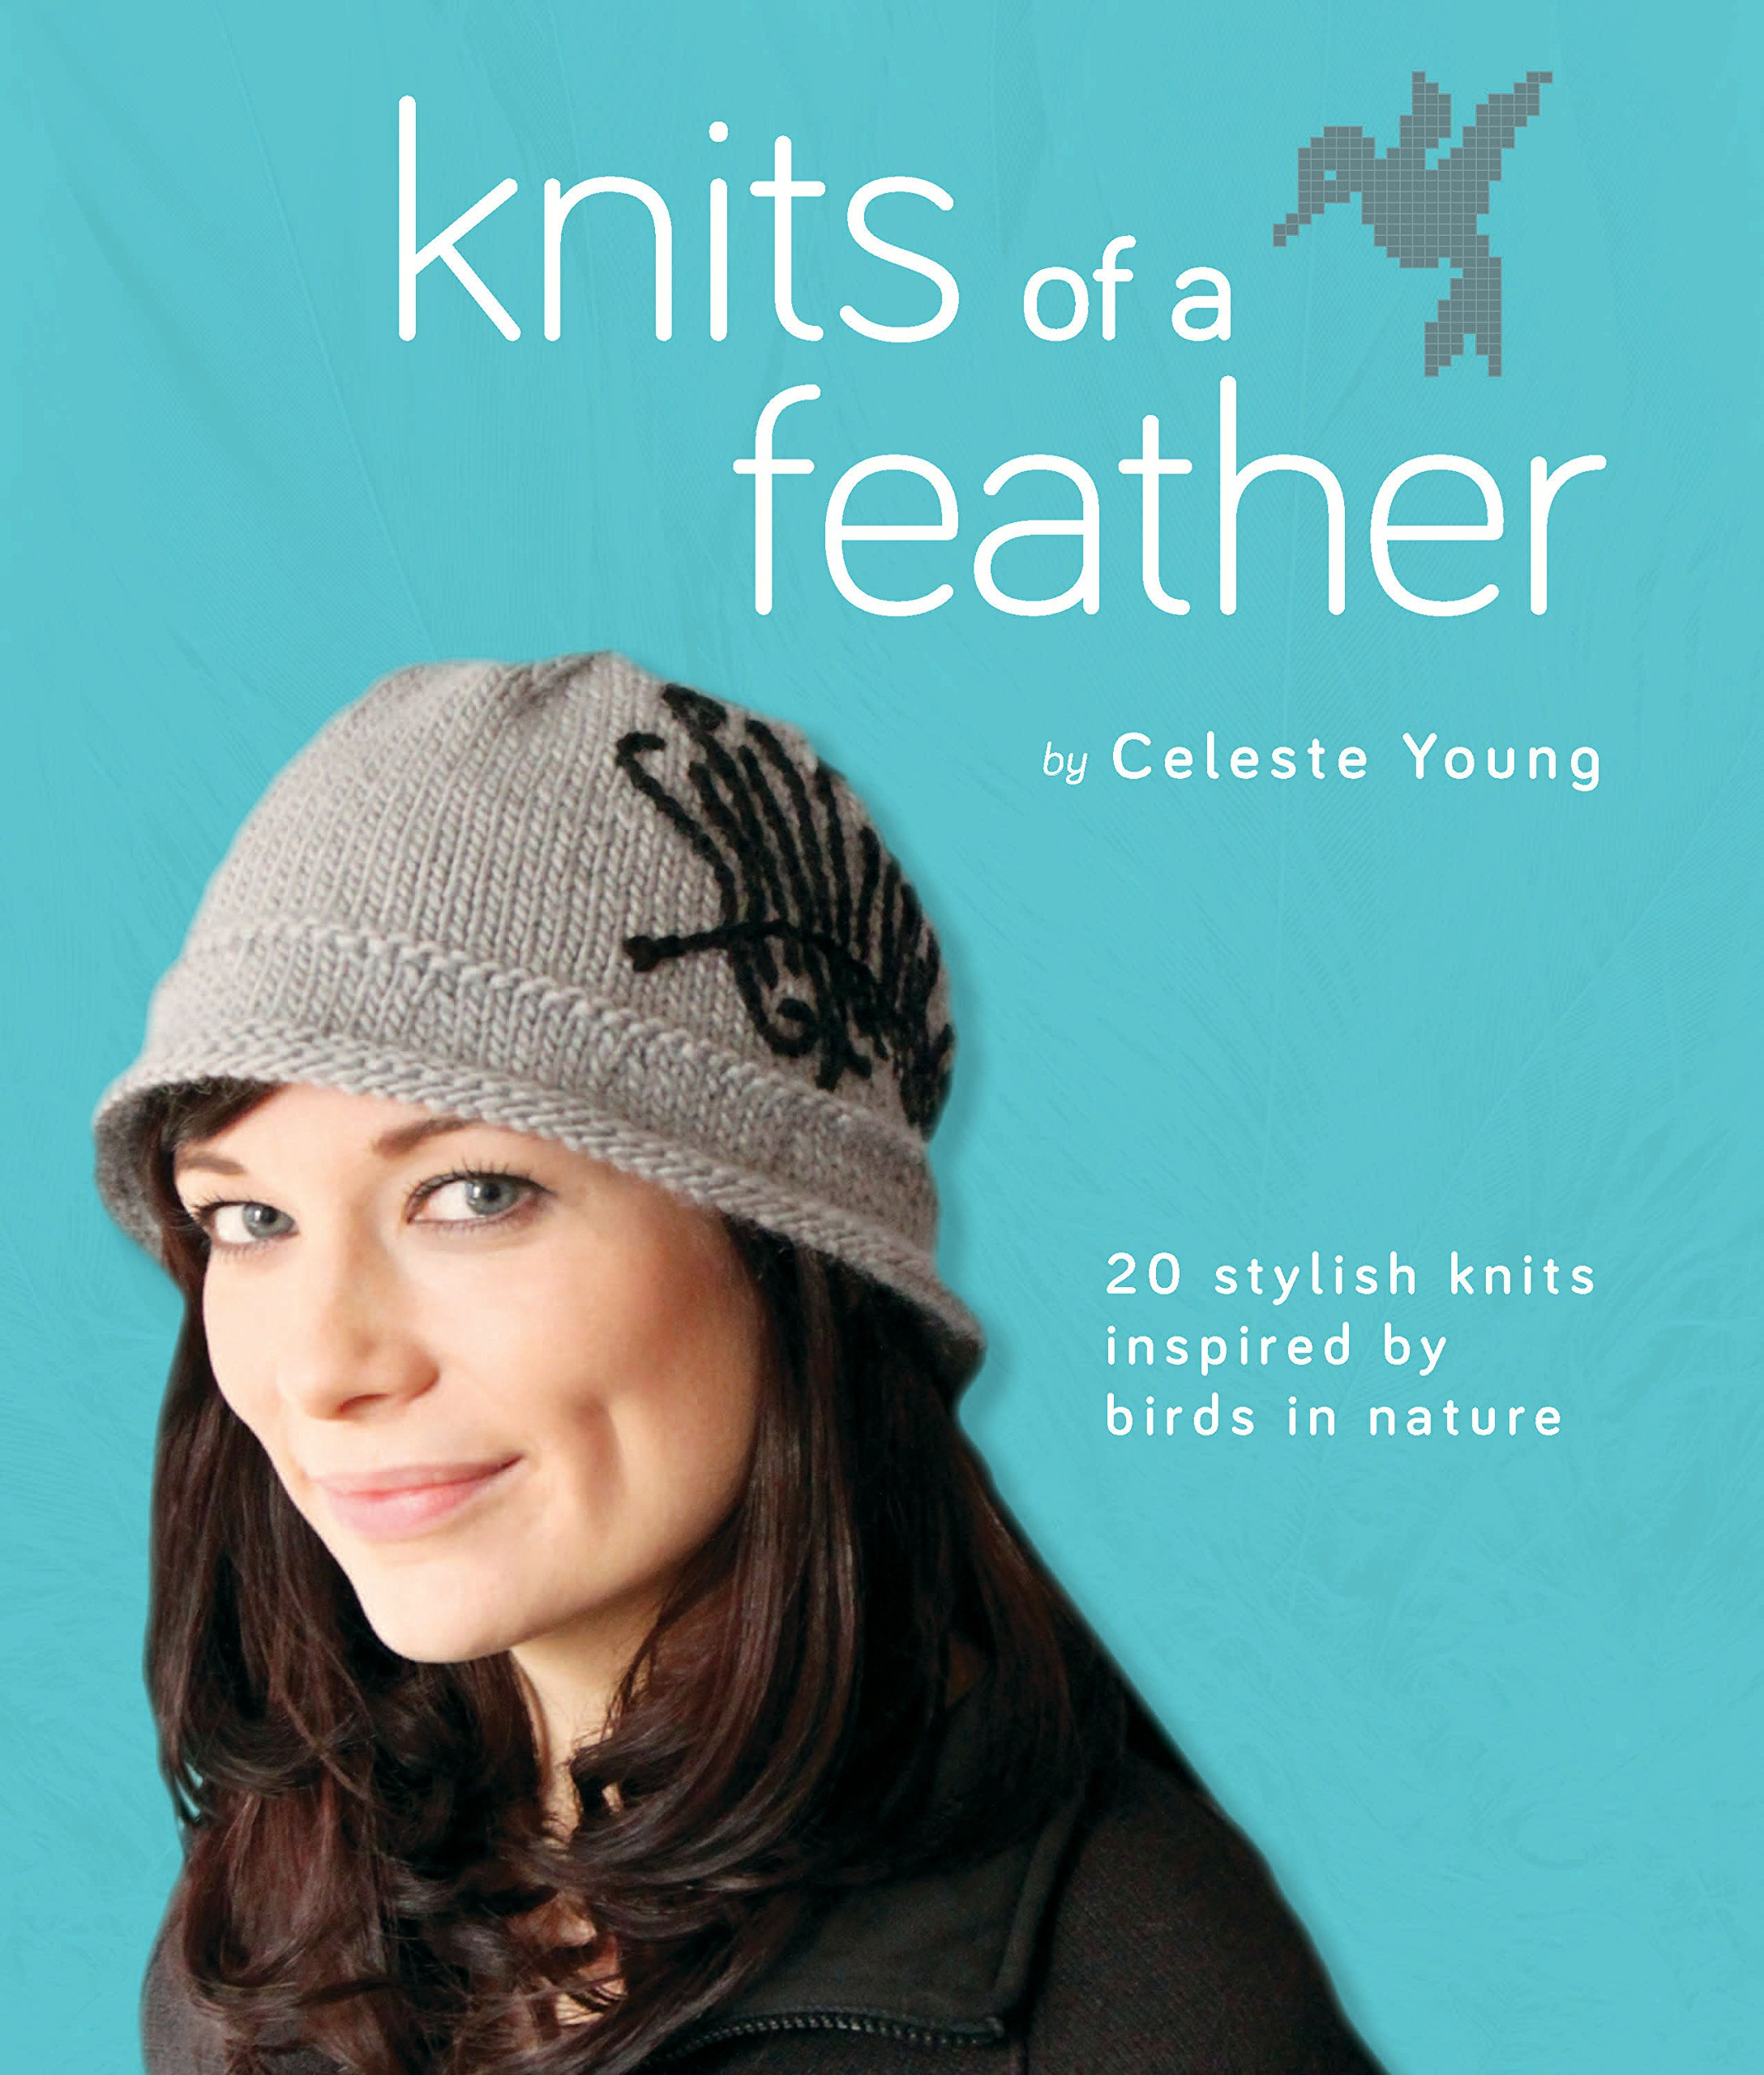 Knits of a Feather: 20 Stylish Knits Inspired by Birds in Nature PDF